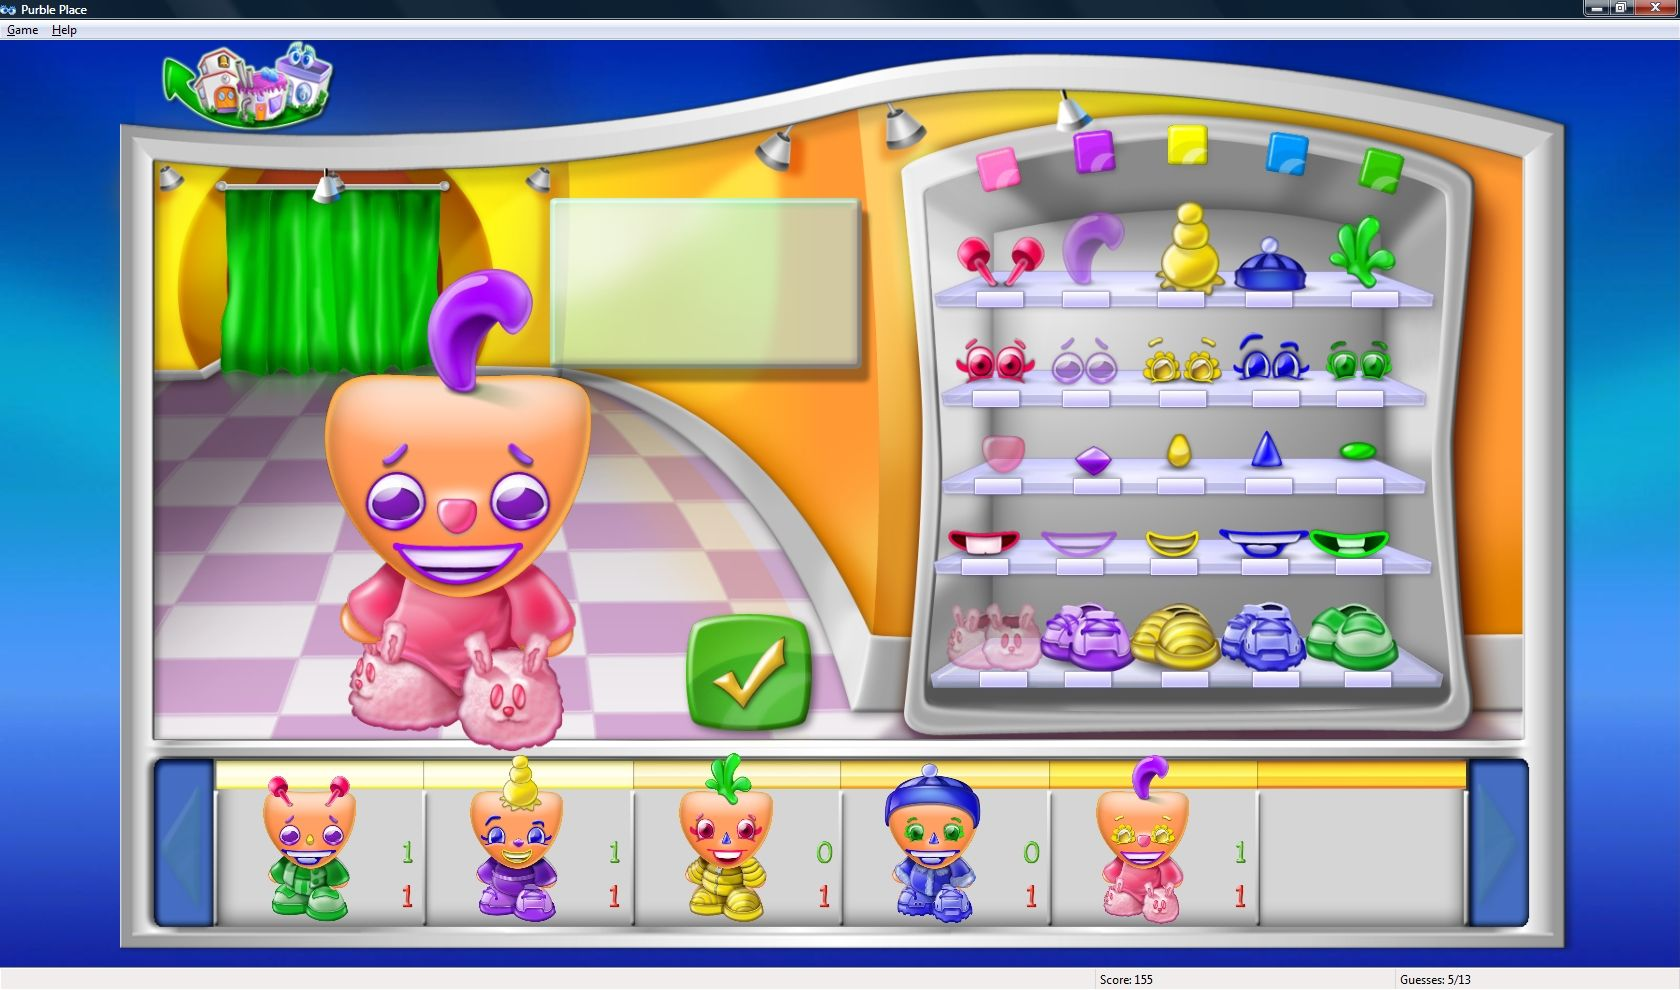 Free Purble Place Cake Game